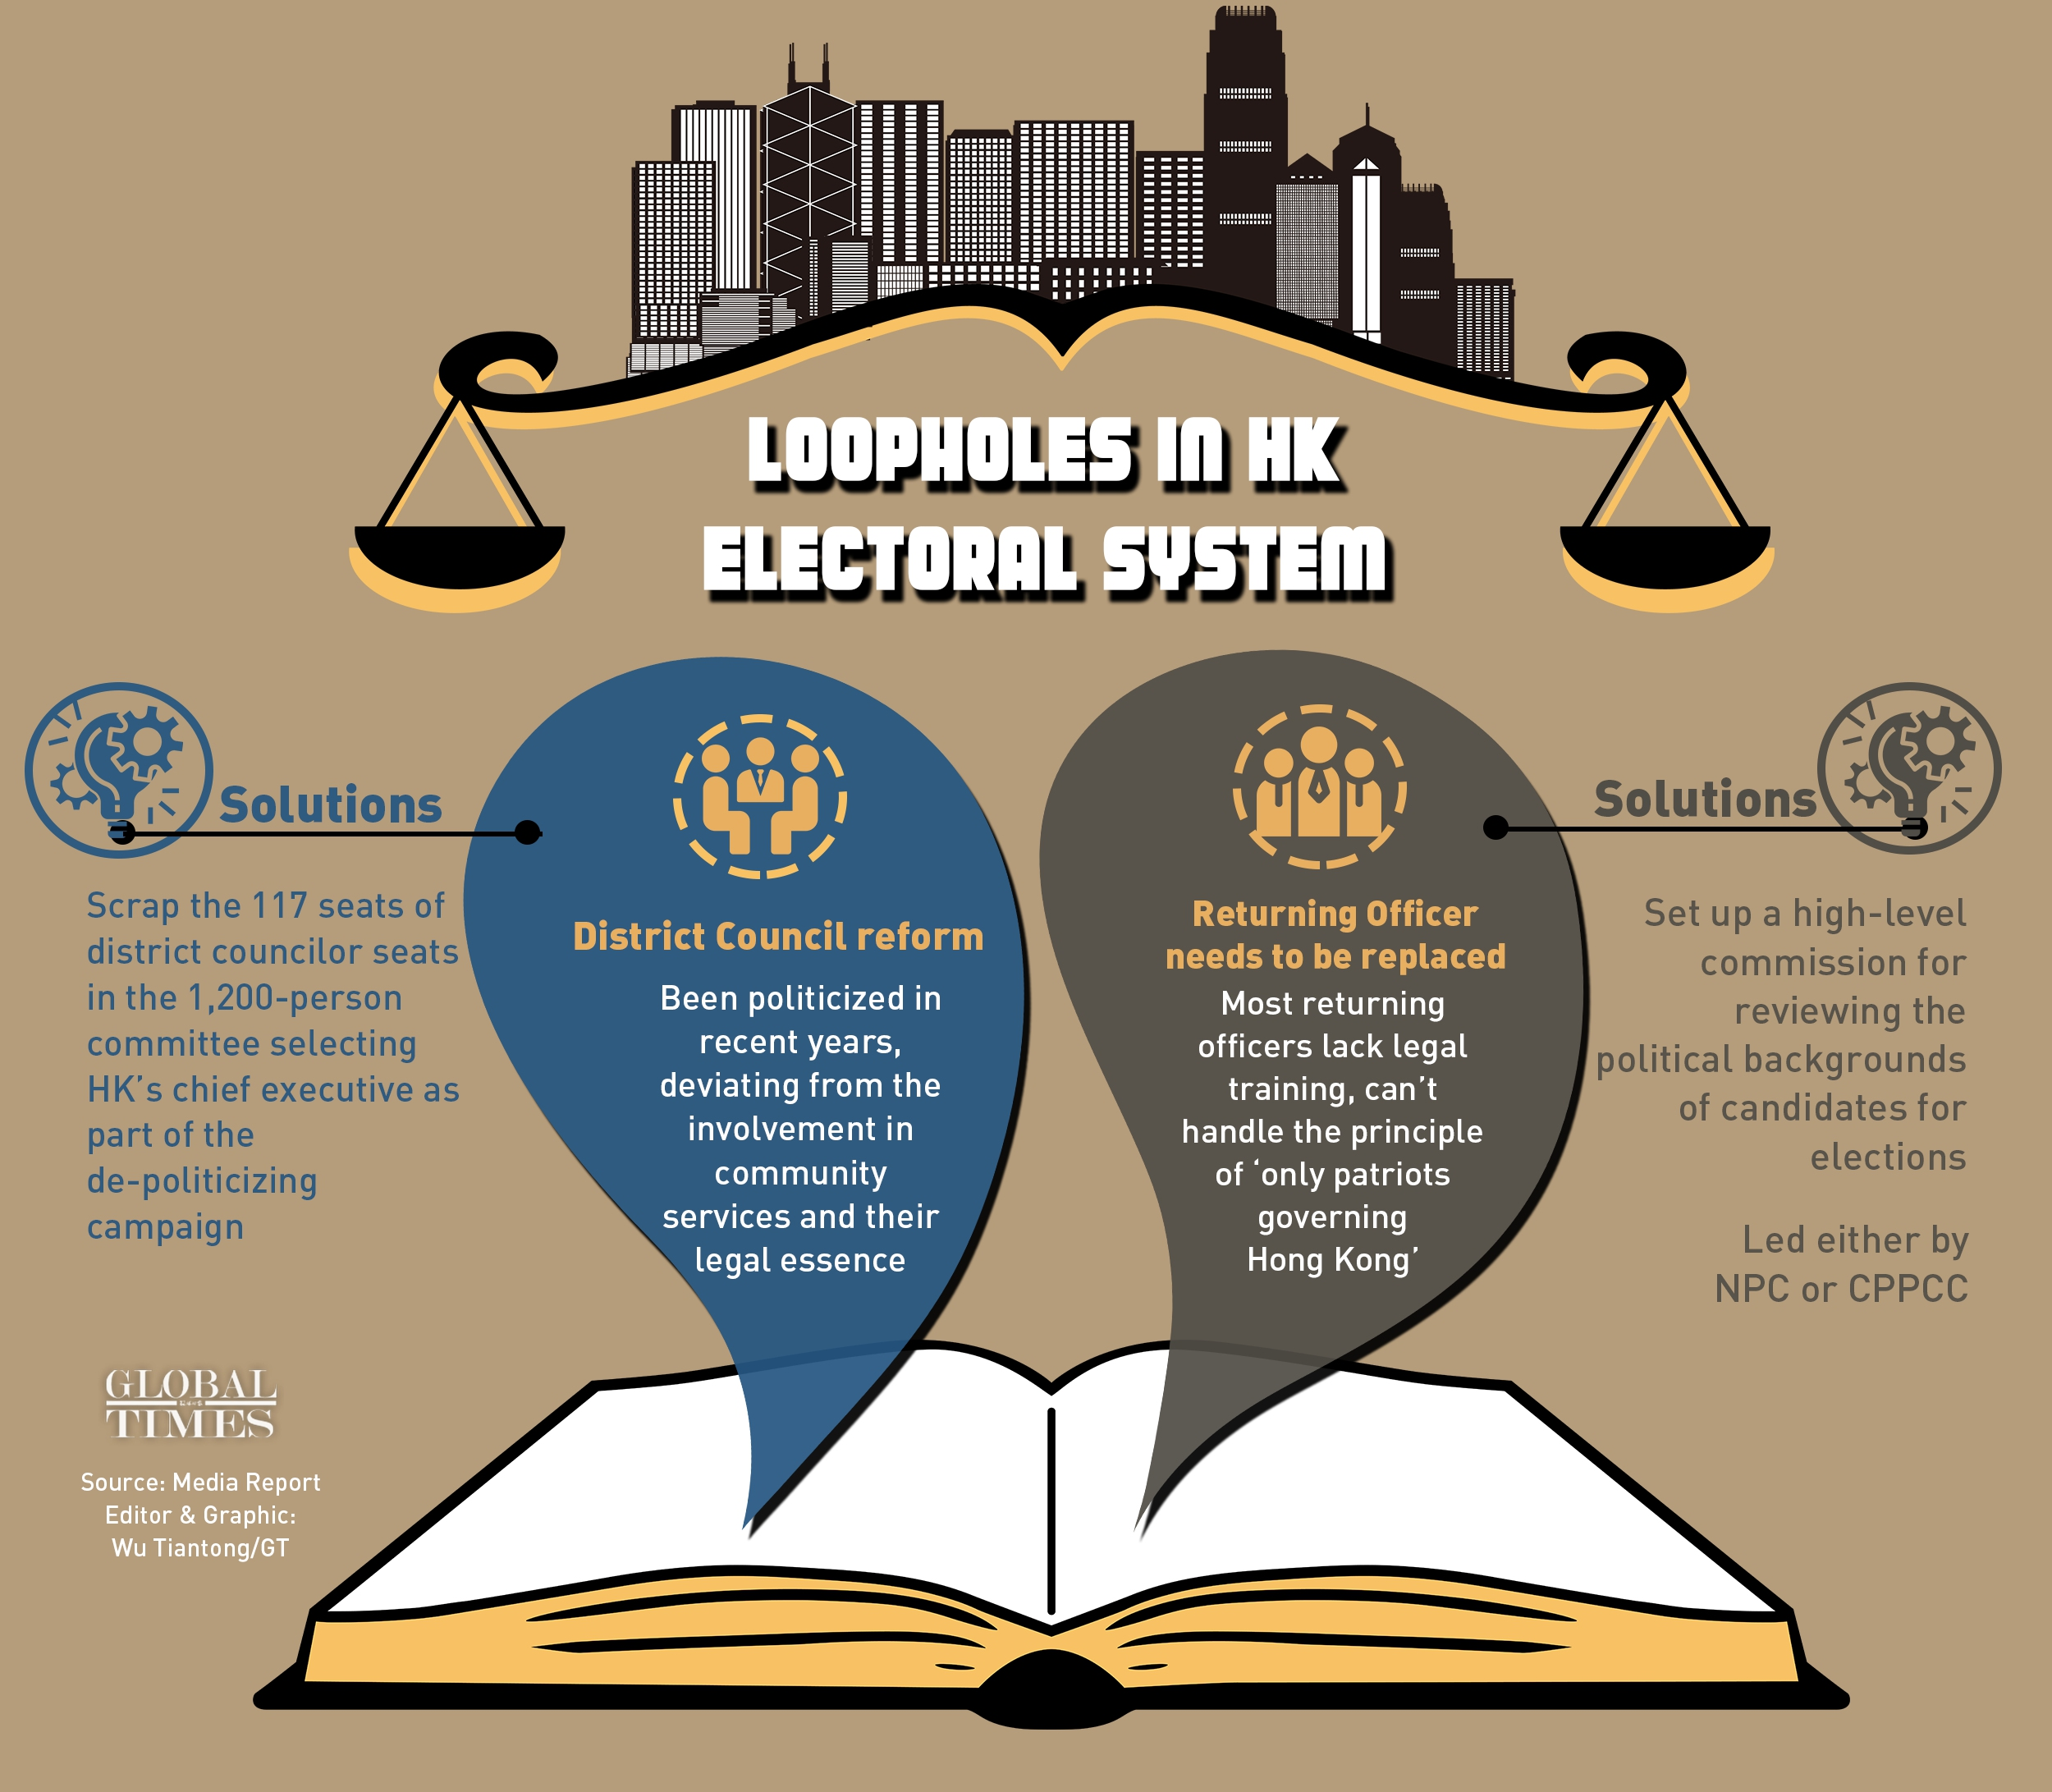 Loopholes in HK electoral system Infographic: Wu Tiantong/GT